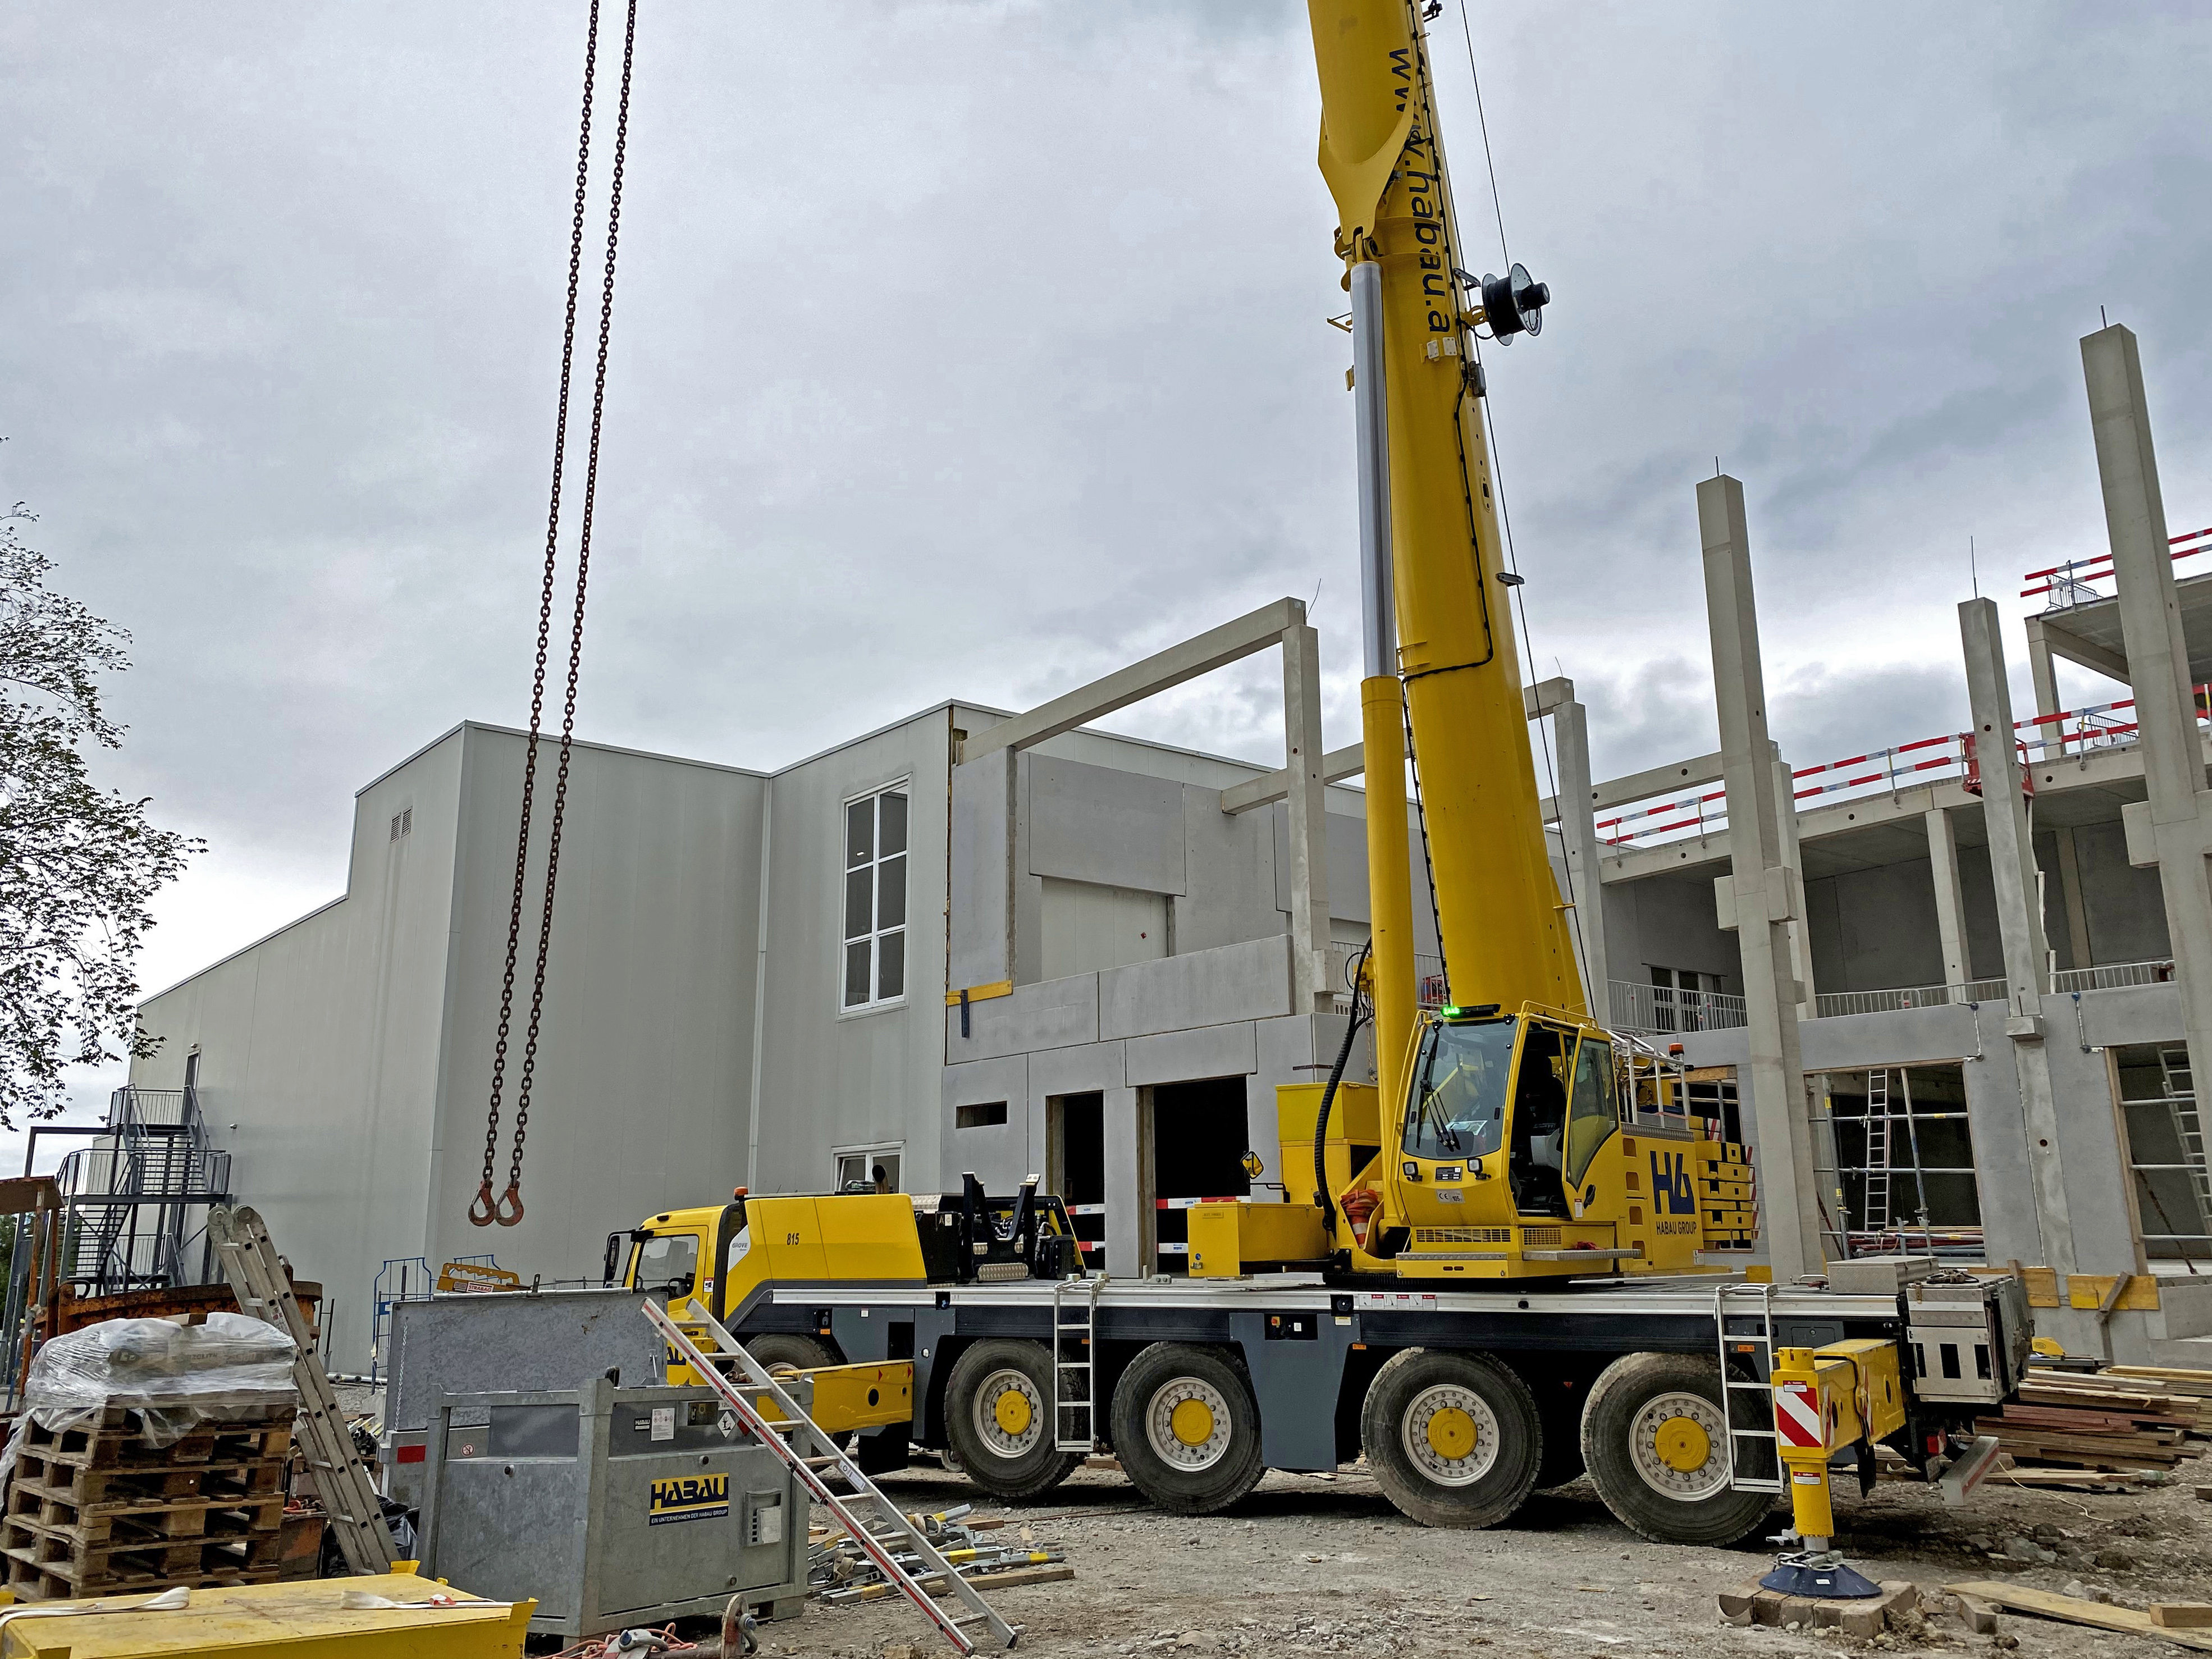 HABAU's Grove GMK5150L lifting columns, beams, and wall and ceiling elements at a job site in Austria in 2020.